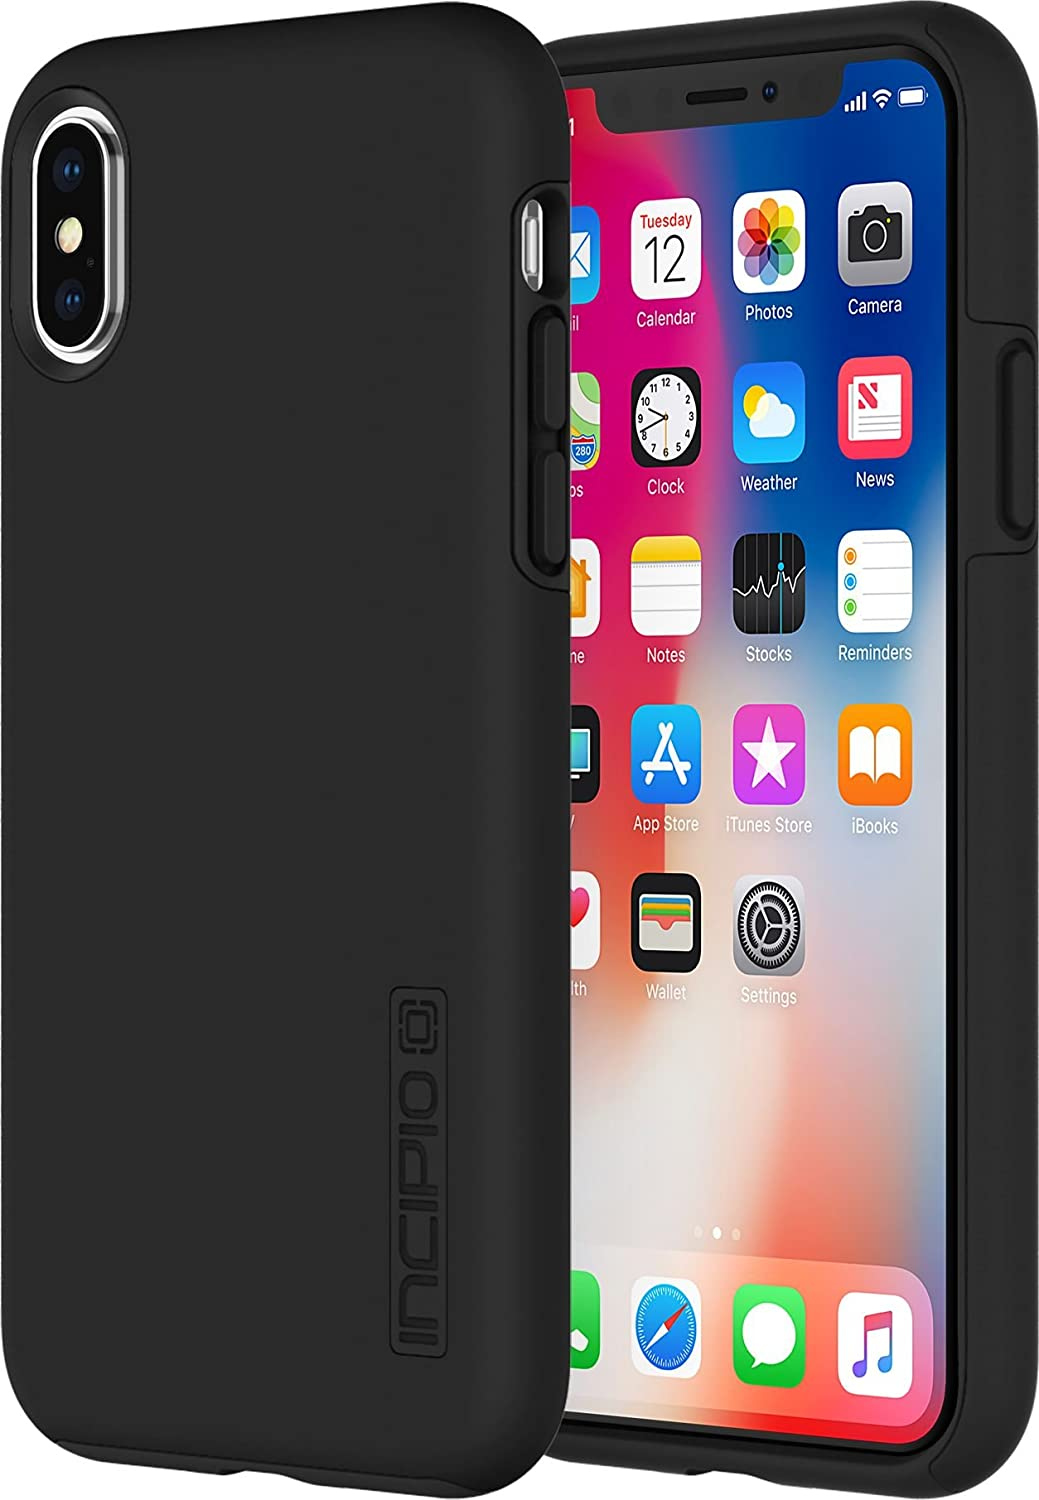 newest d1424 f0780 Incipio DualPro Case Cover for iPhone X - Black,IPH-1629-BLK